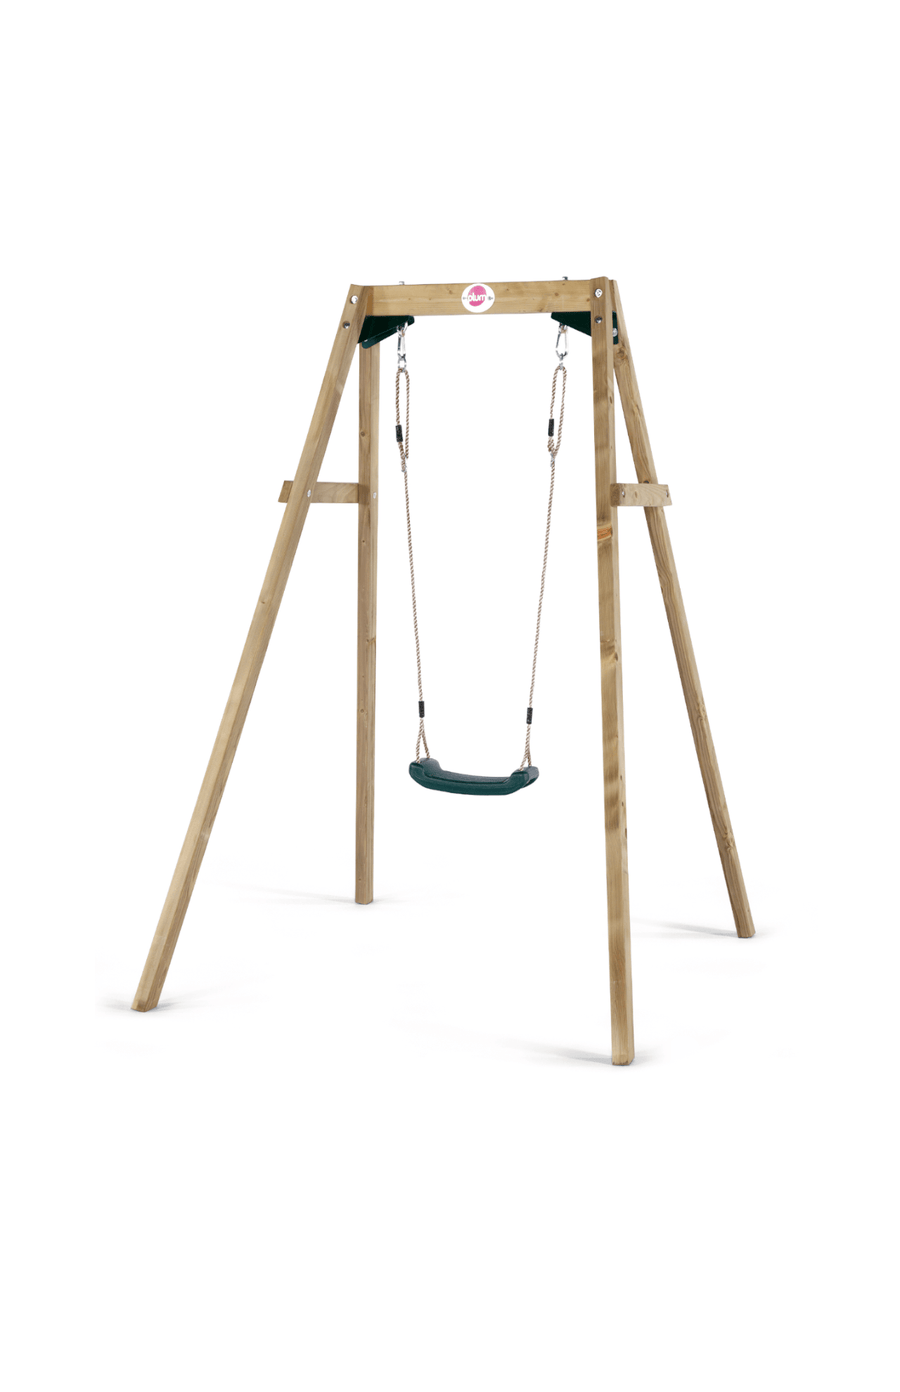 Plum® Wooden Single Swing Set